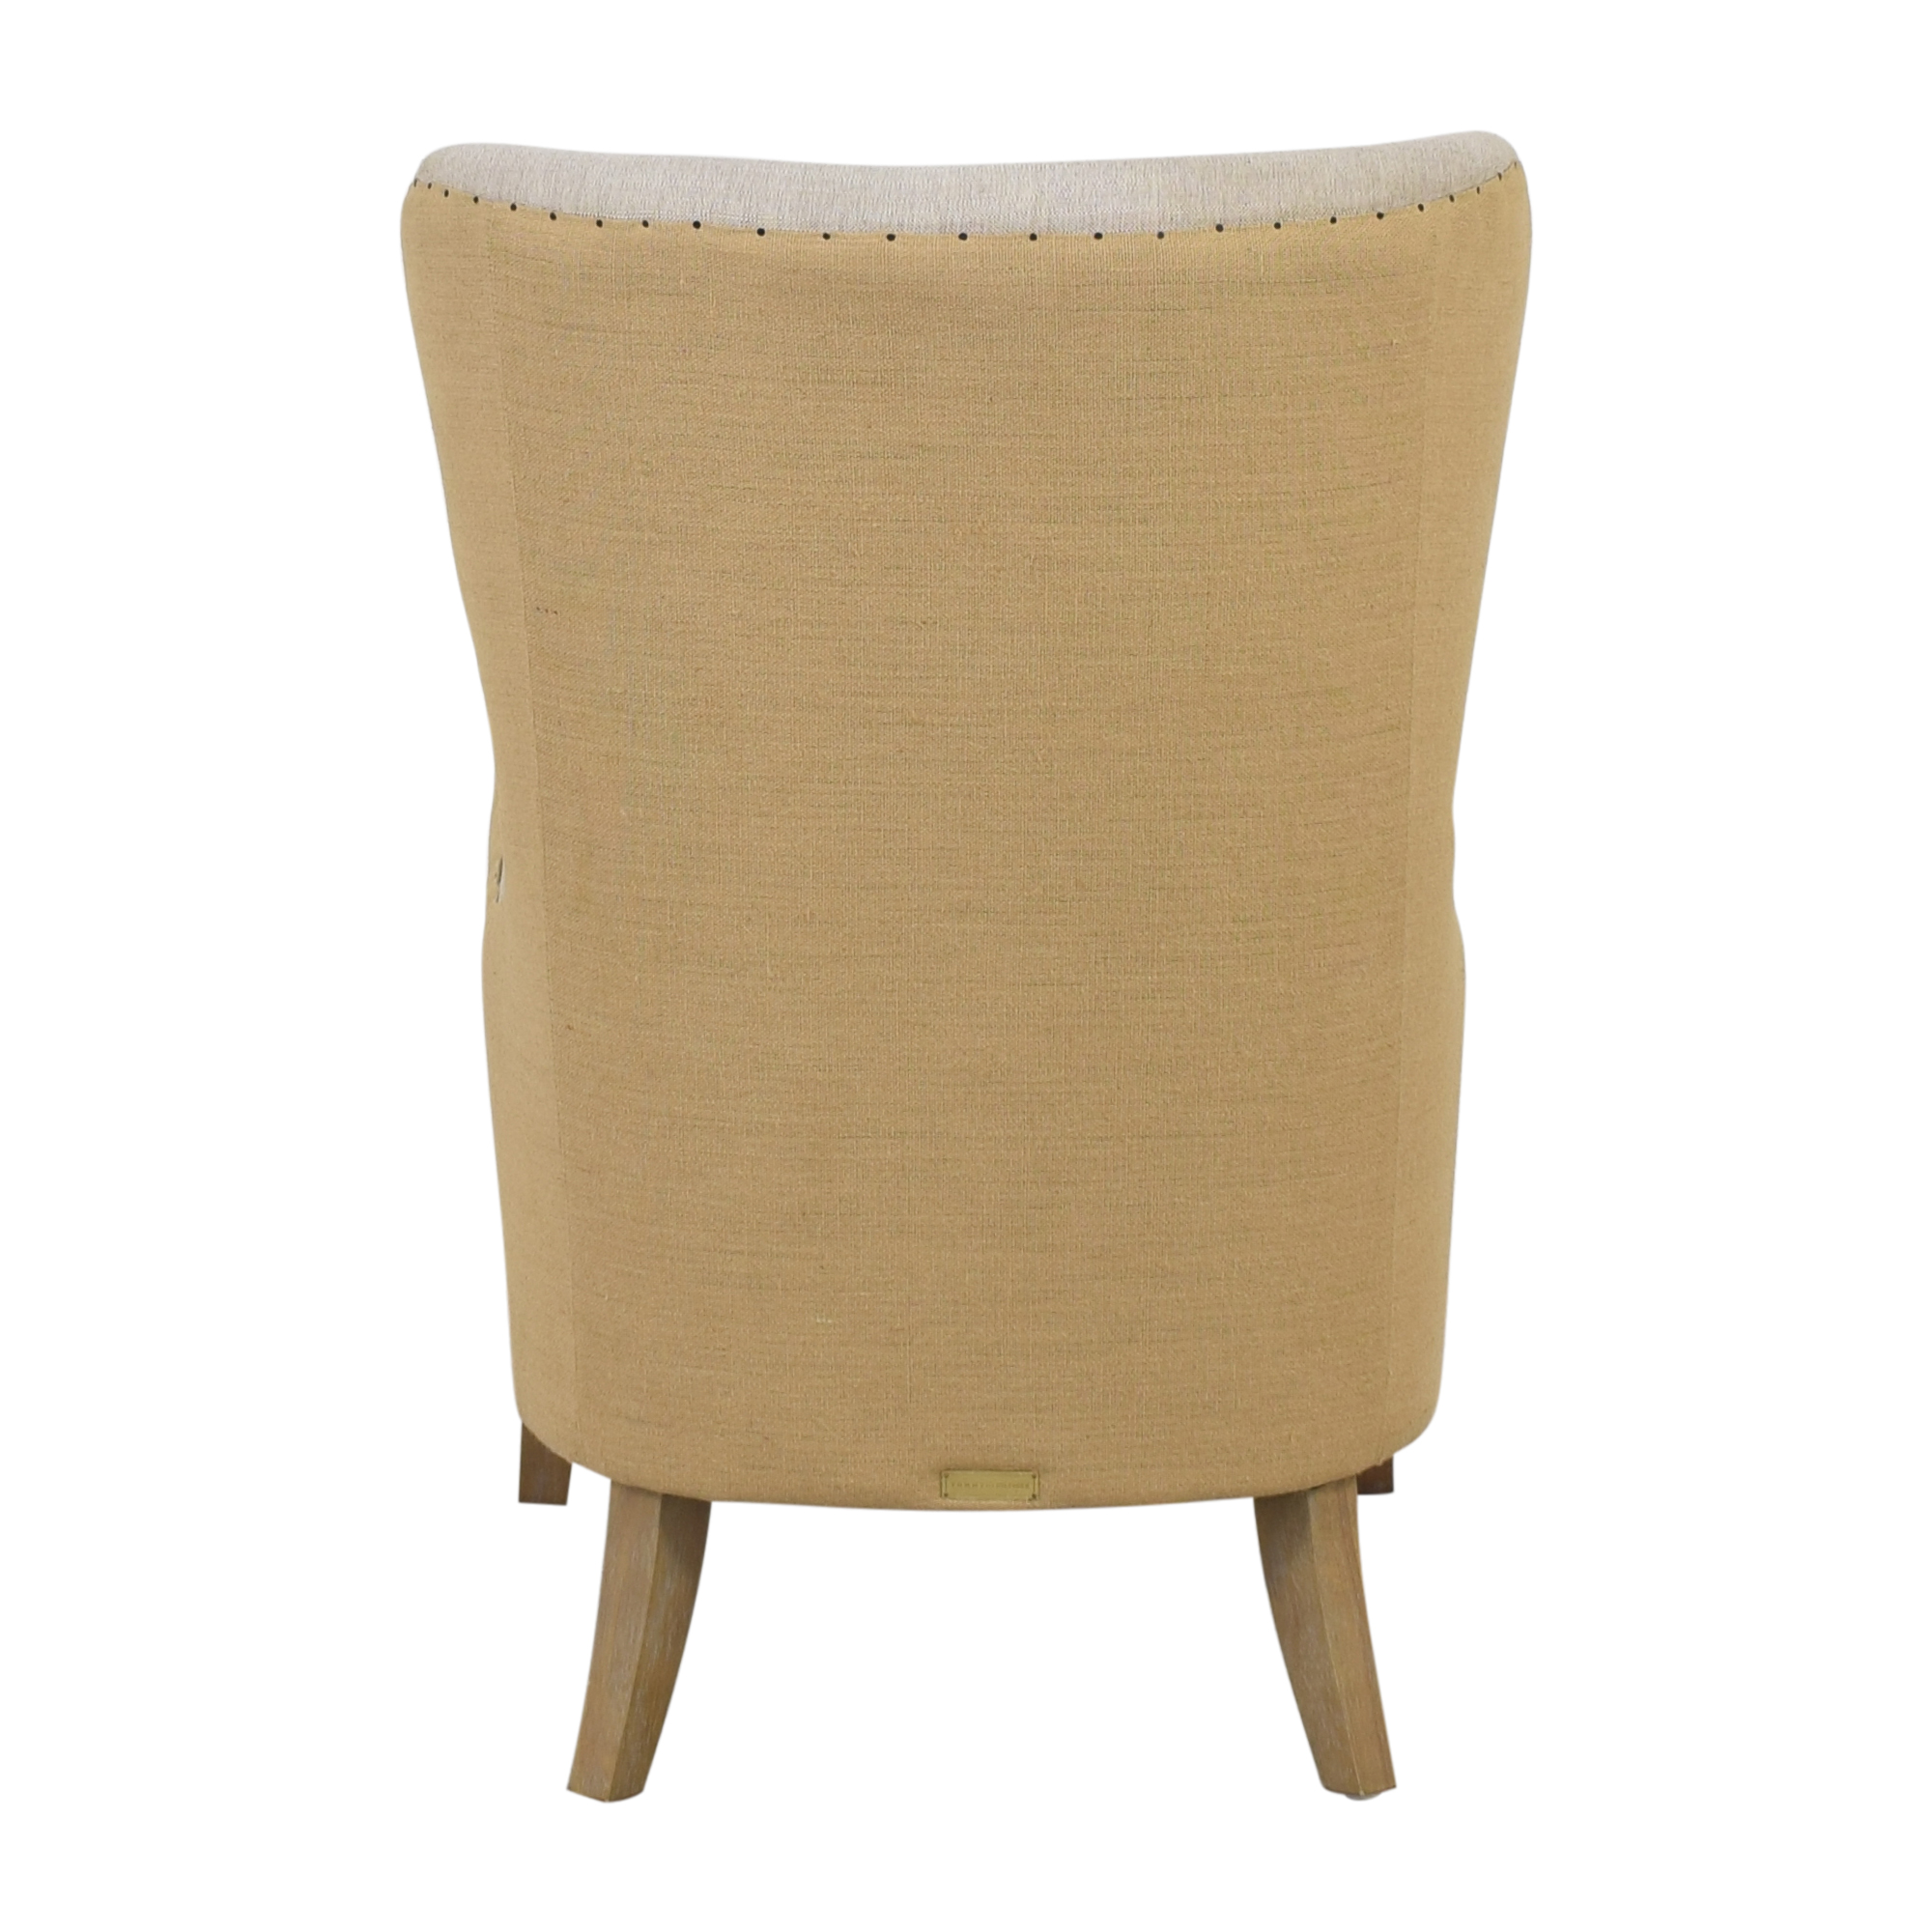 buy Tommy Hilfiger Warner Wingback Chair Bed Bath & Beyond Accent Chairs